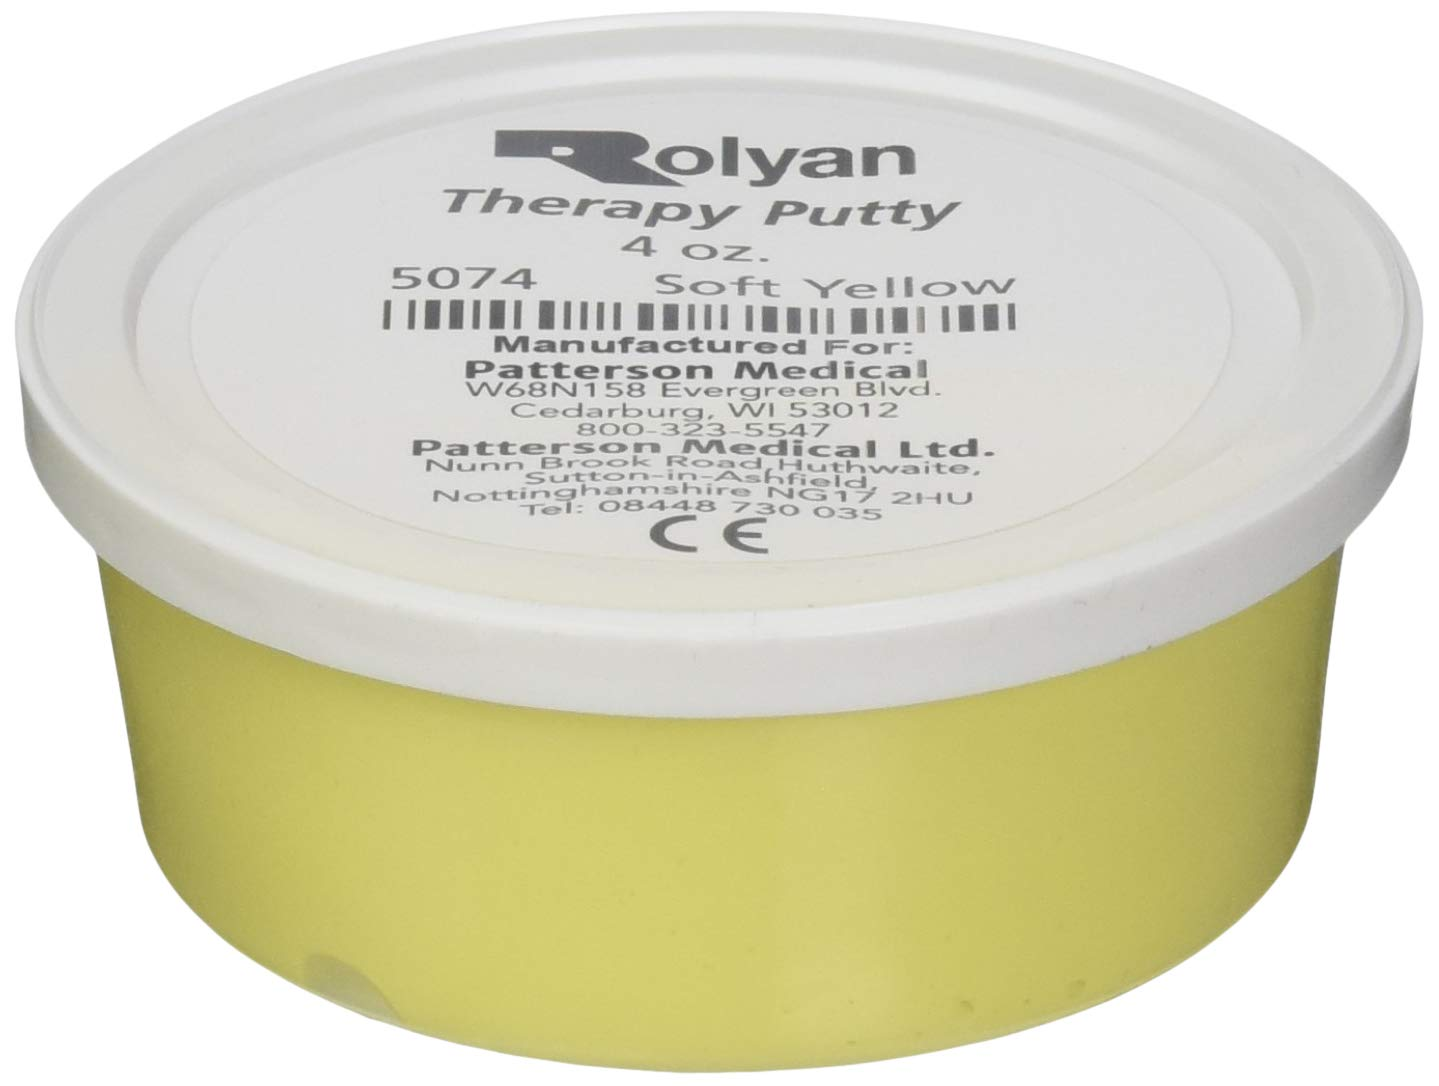 Sammons Preston Master Pack, Therapy Putty For Physical Therapy Exercises, Hand Grip and Strength Training, For Stress and Pain Relief, Occupational Therapy, Set of 10, 4 Ounces, Yellow, Soft